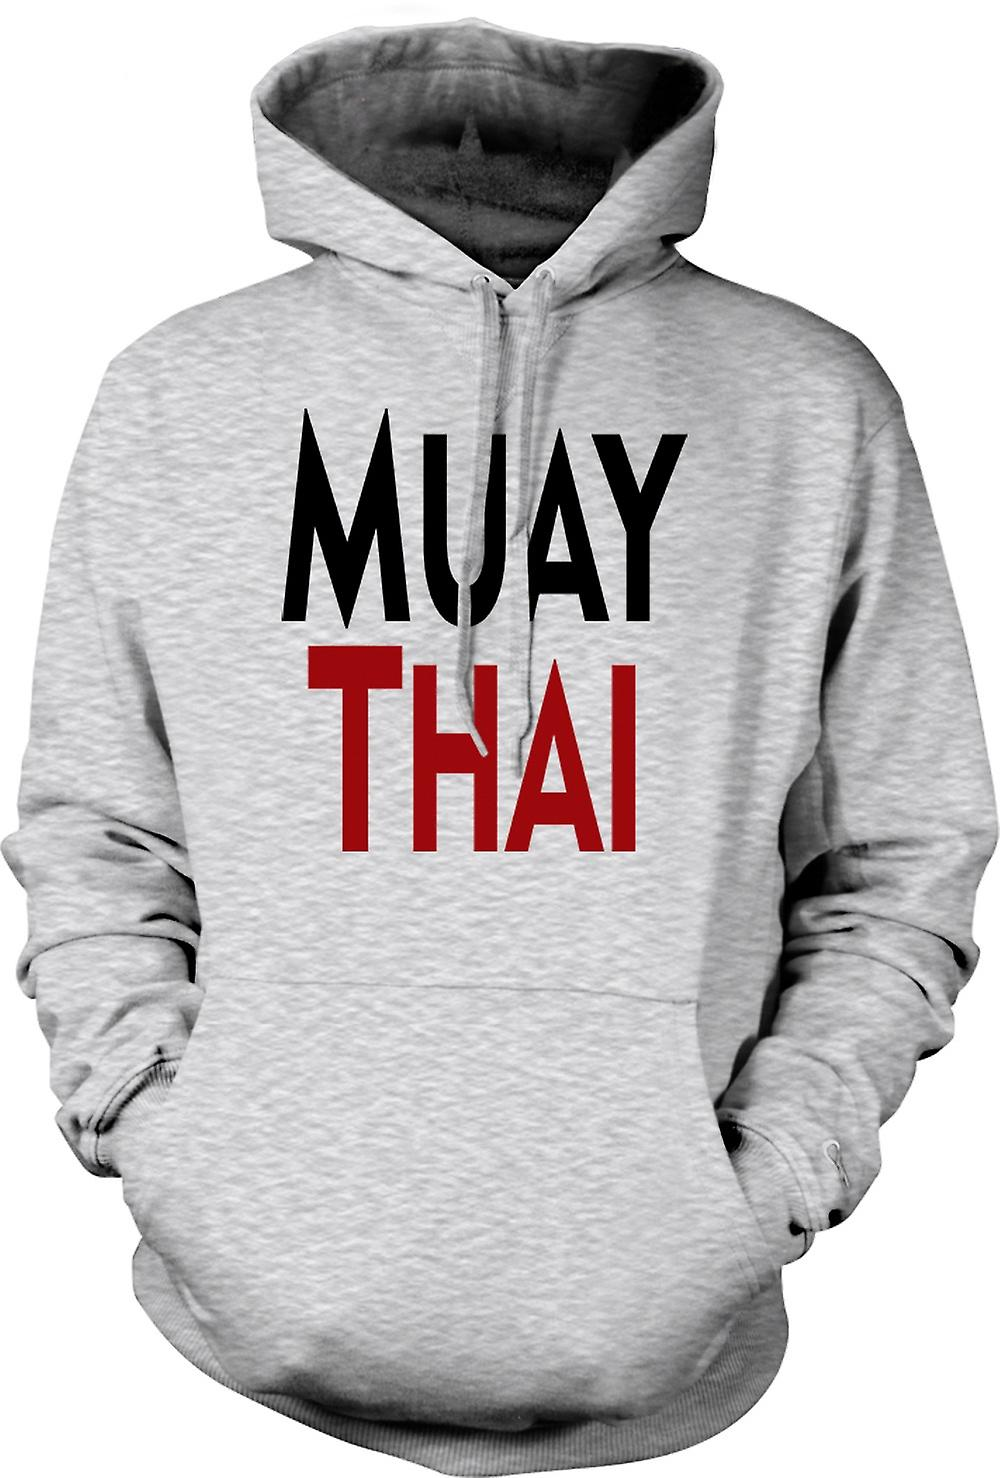 Mens Hoodie - Muay Thai - Martial Art - Slogan